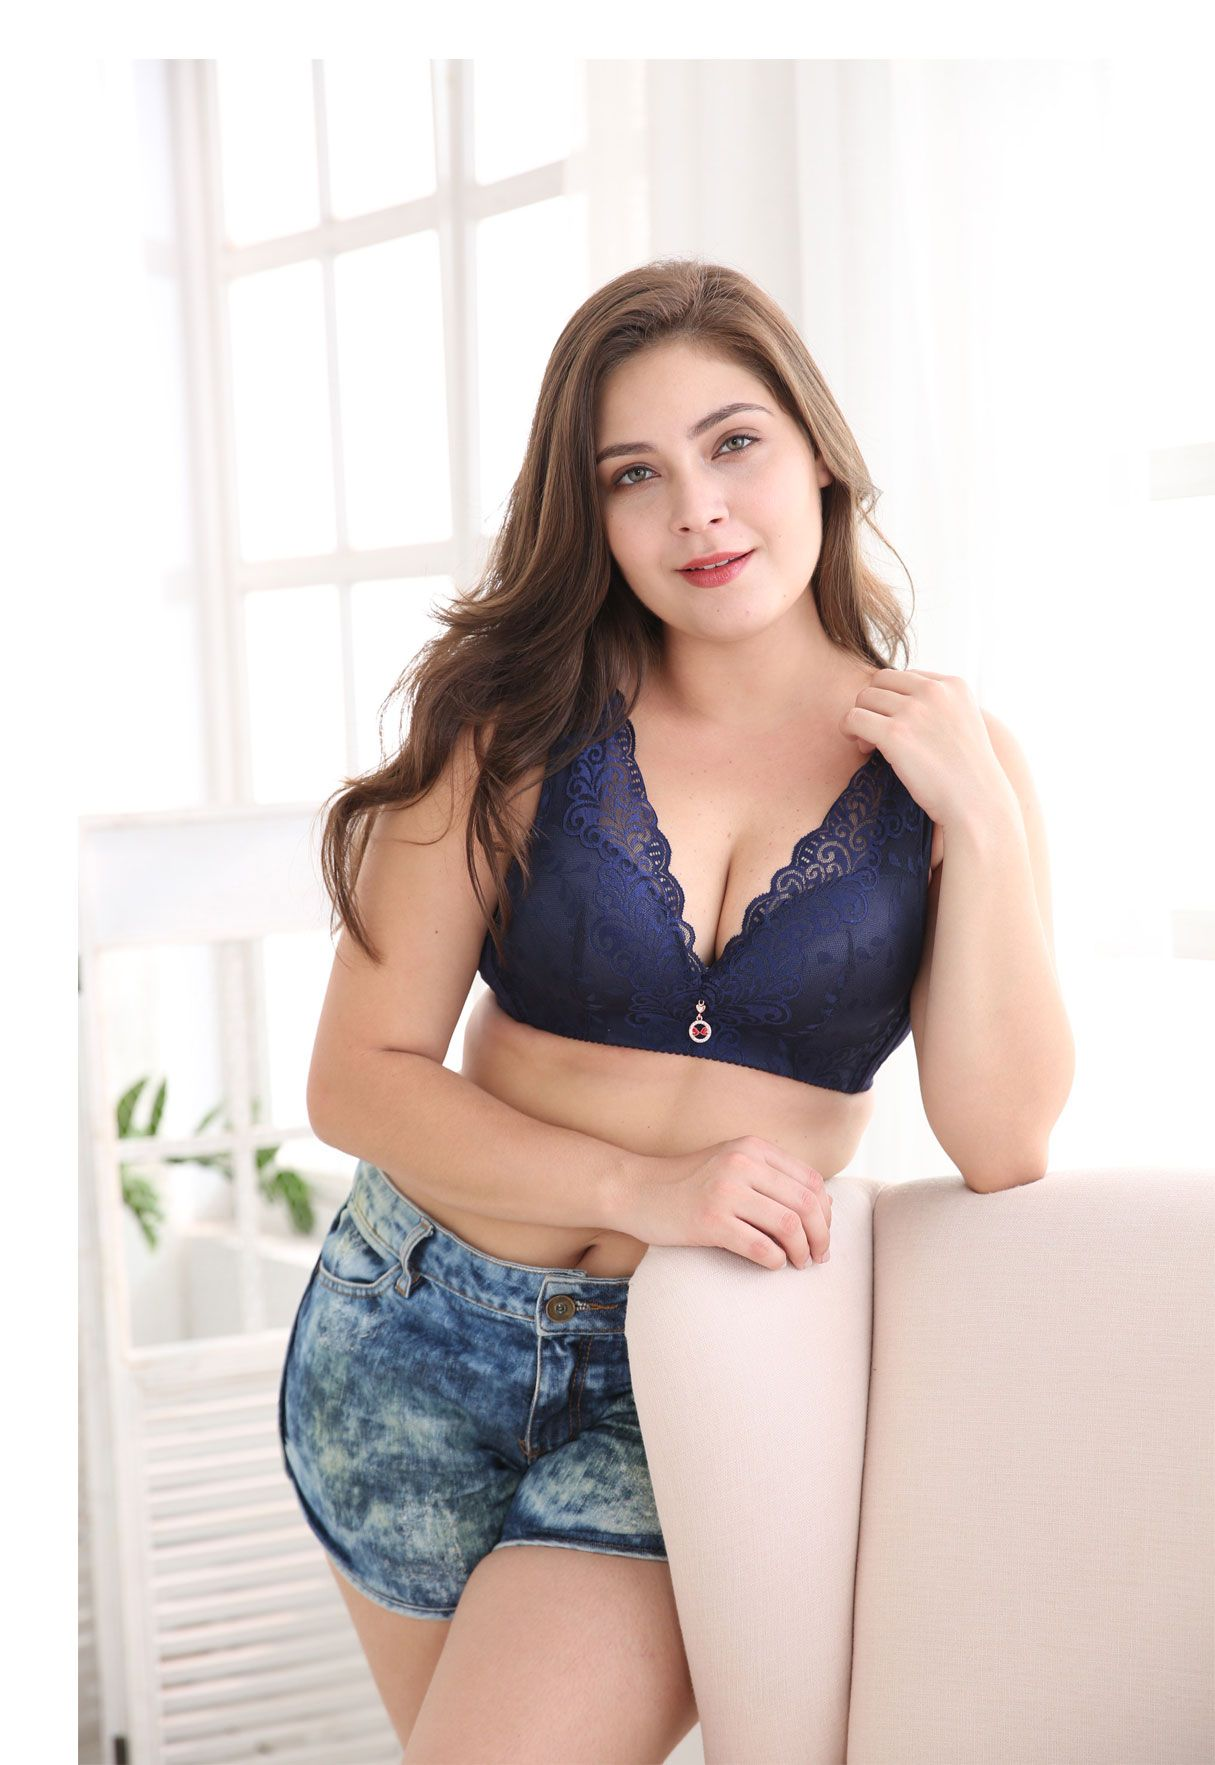 a01b7049e50 FallSweet Plus Size Lace Bra C Cup Wide Back Push Up Brassiere For Women